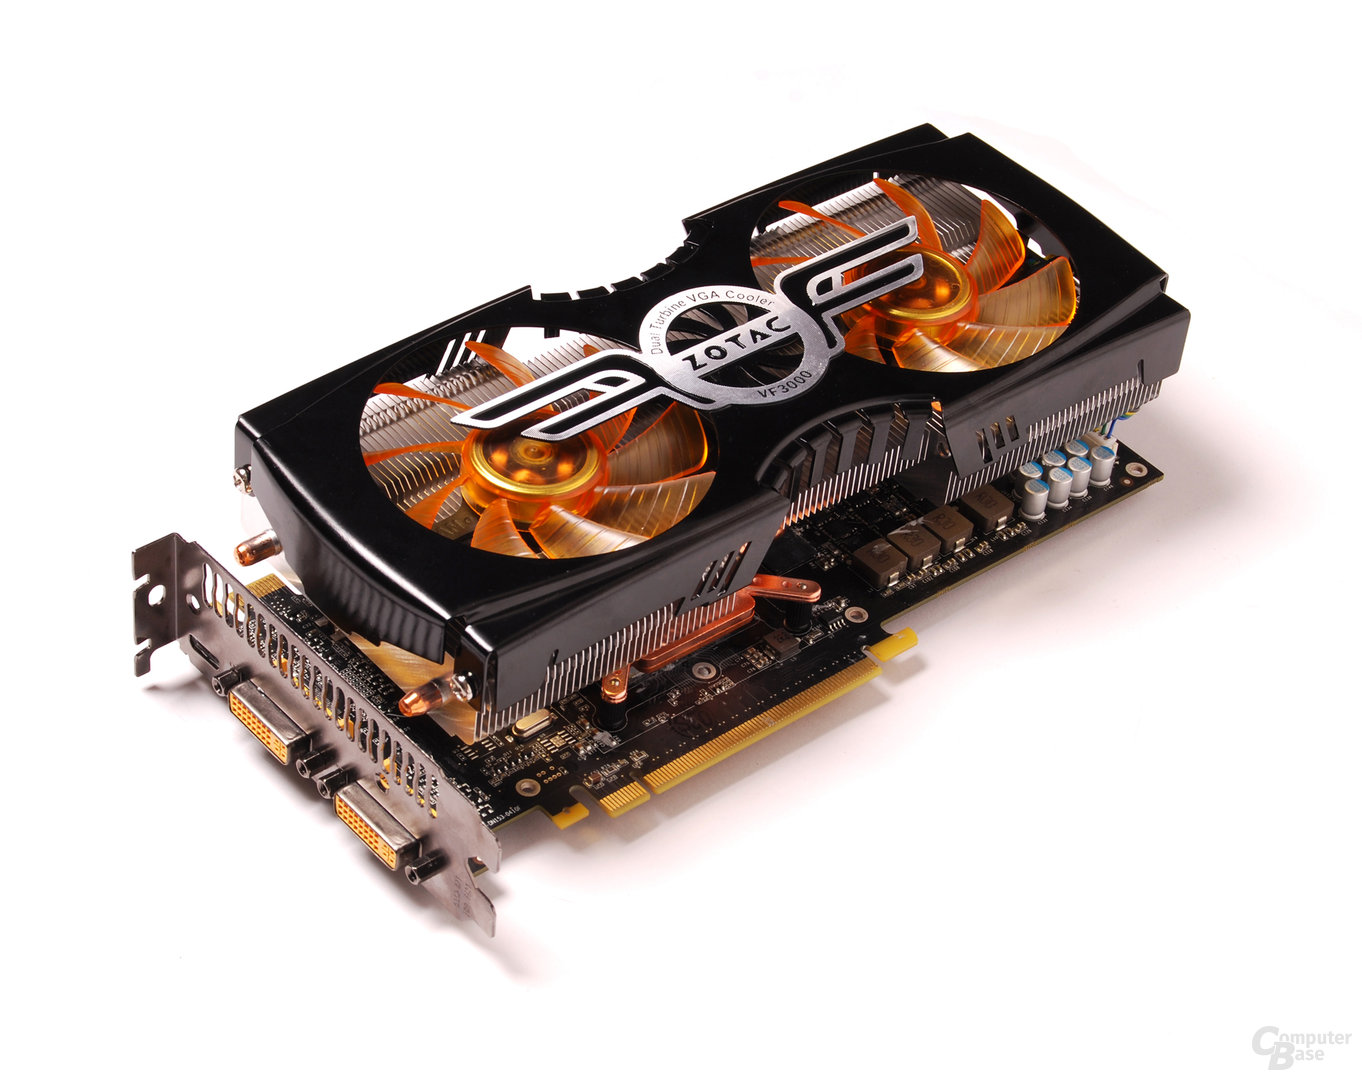 Zotac GeForce GTX 470 AMP! Edition